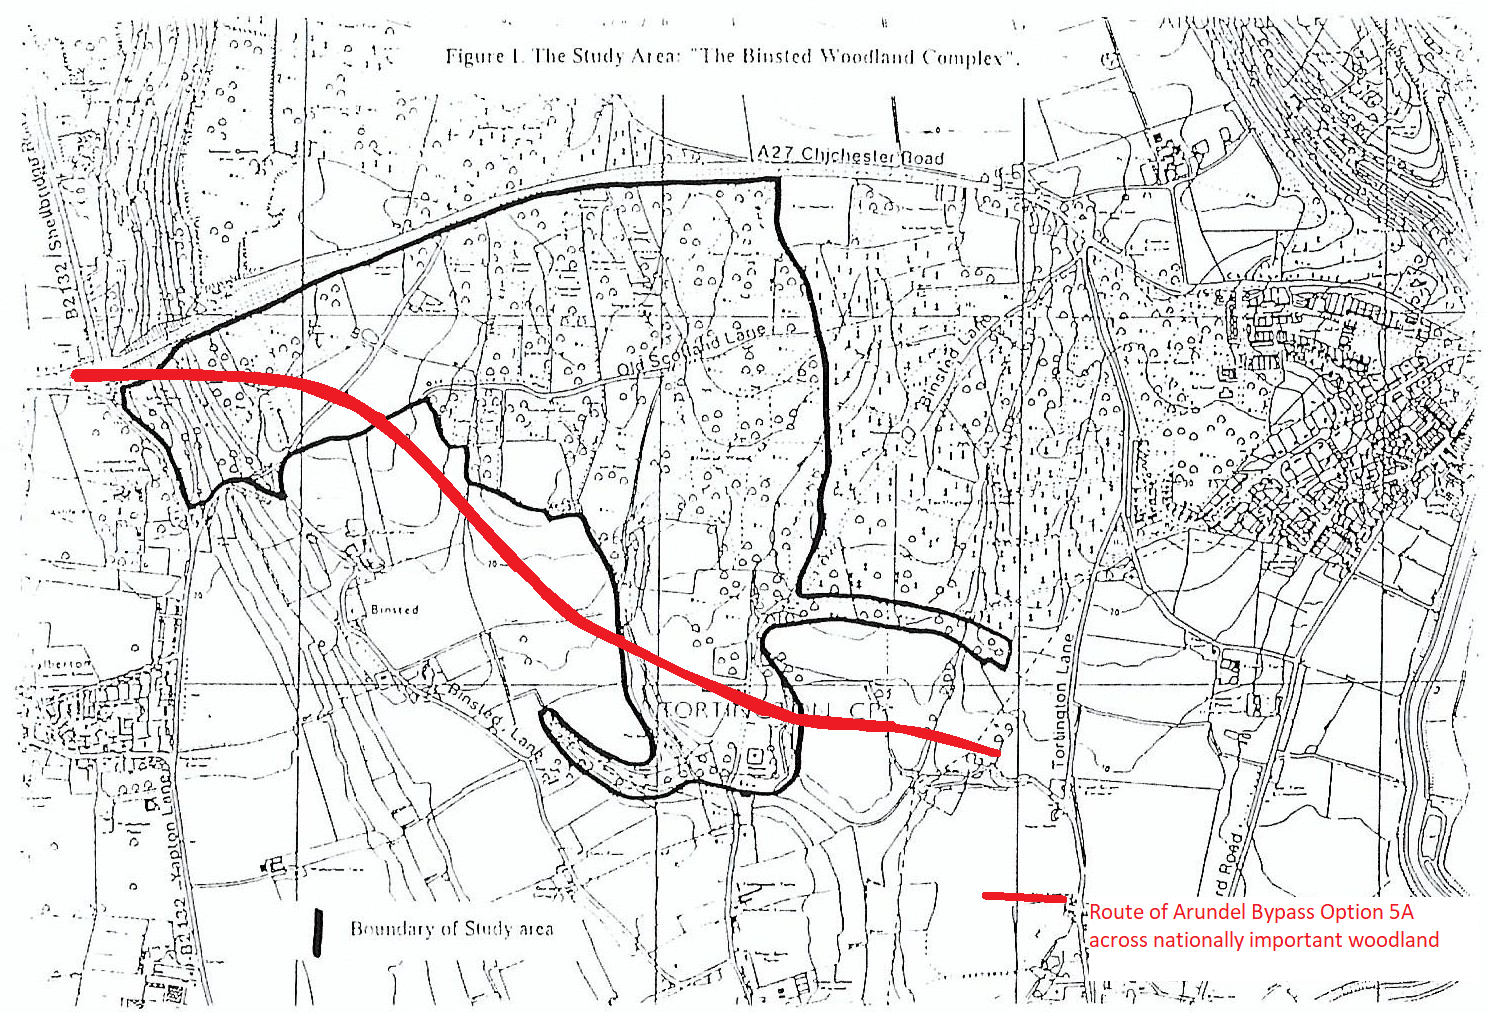 Route of Arundel Bypass across important woodland